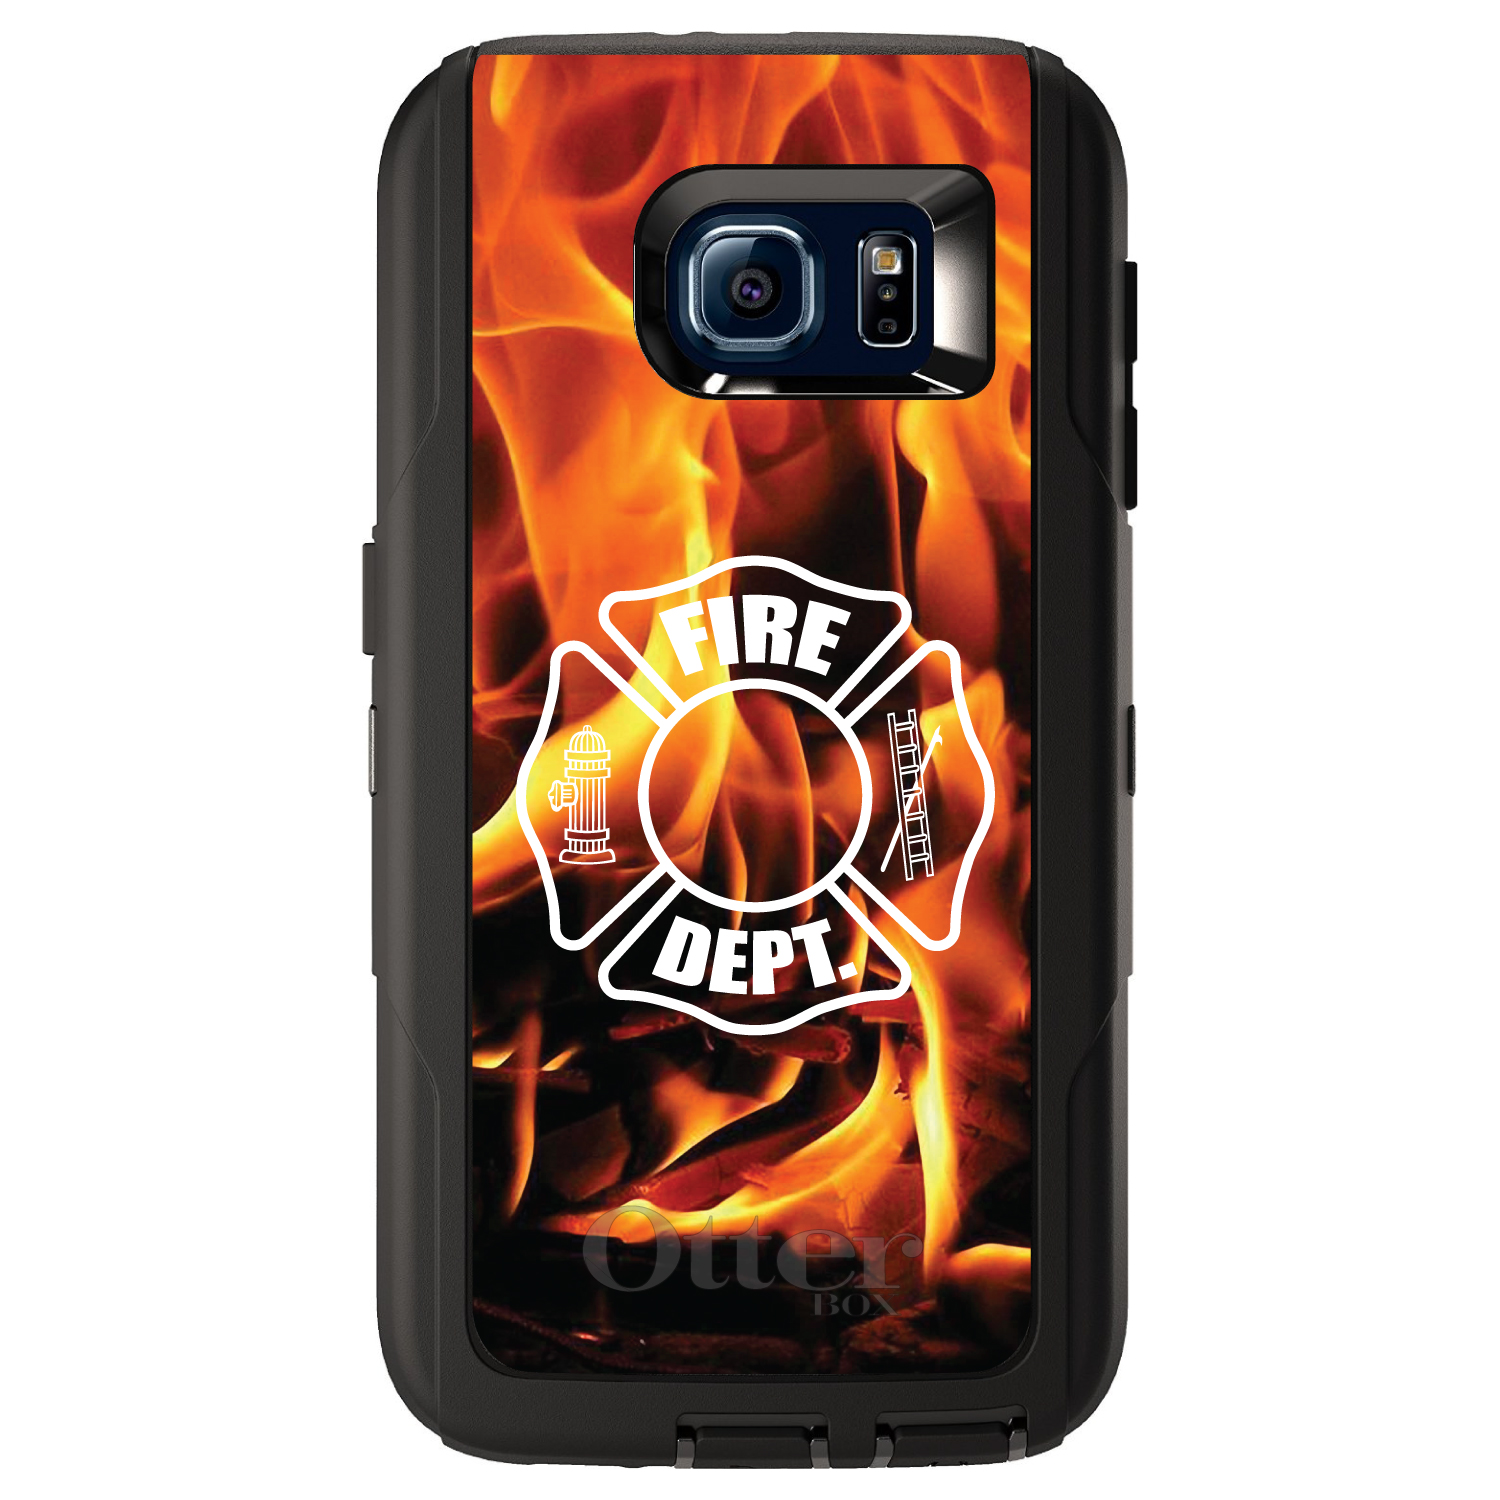 DistinctInk™ Custom Black OtterBox Defender Series Case for Samsung Galaxy S6 - Flames Fire Department